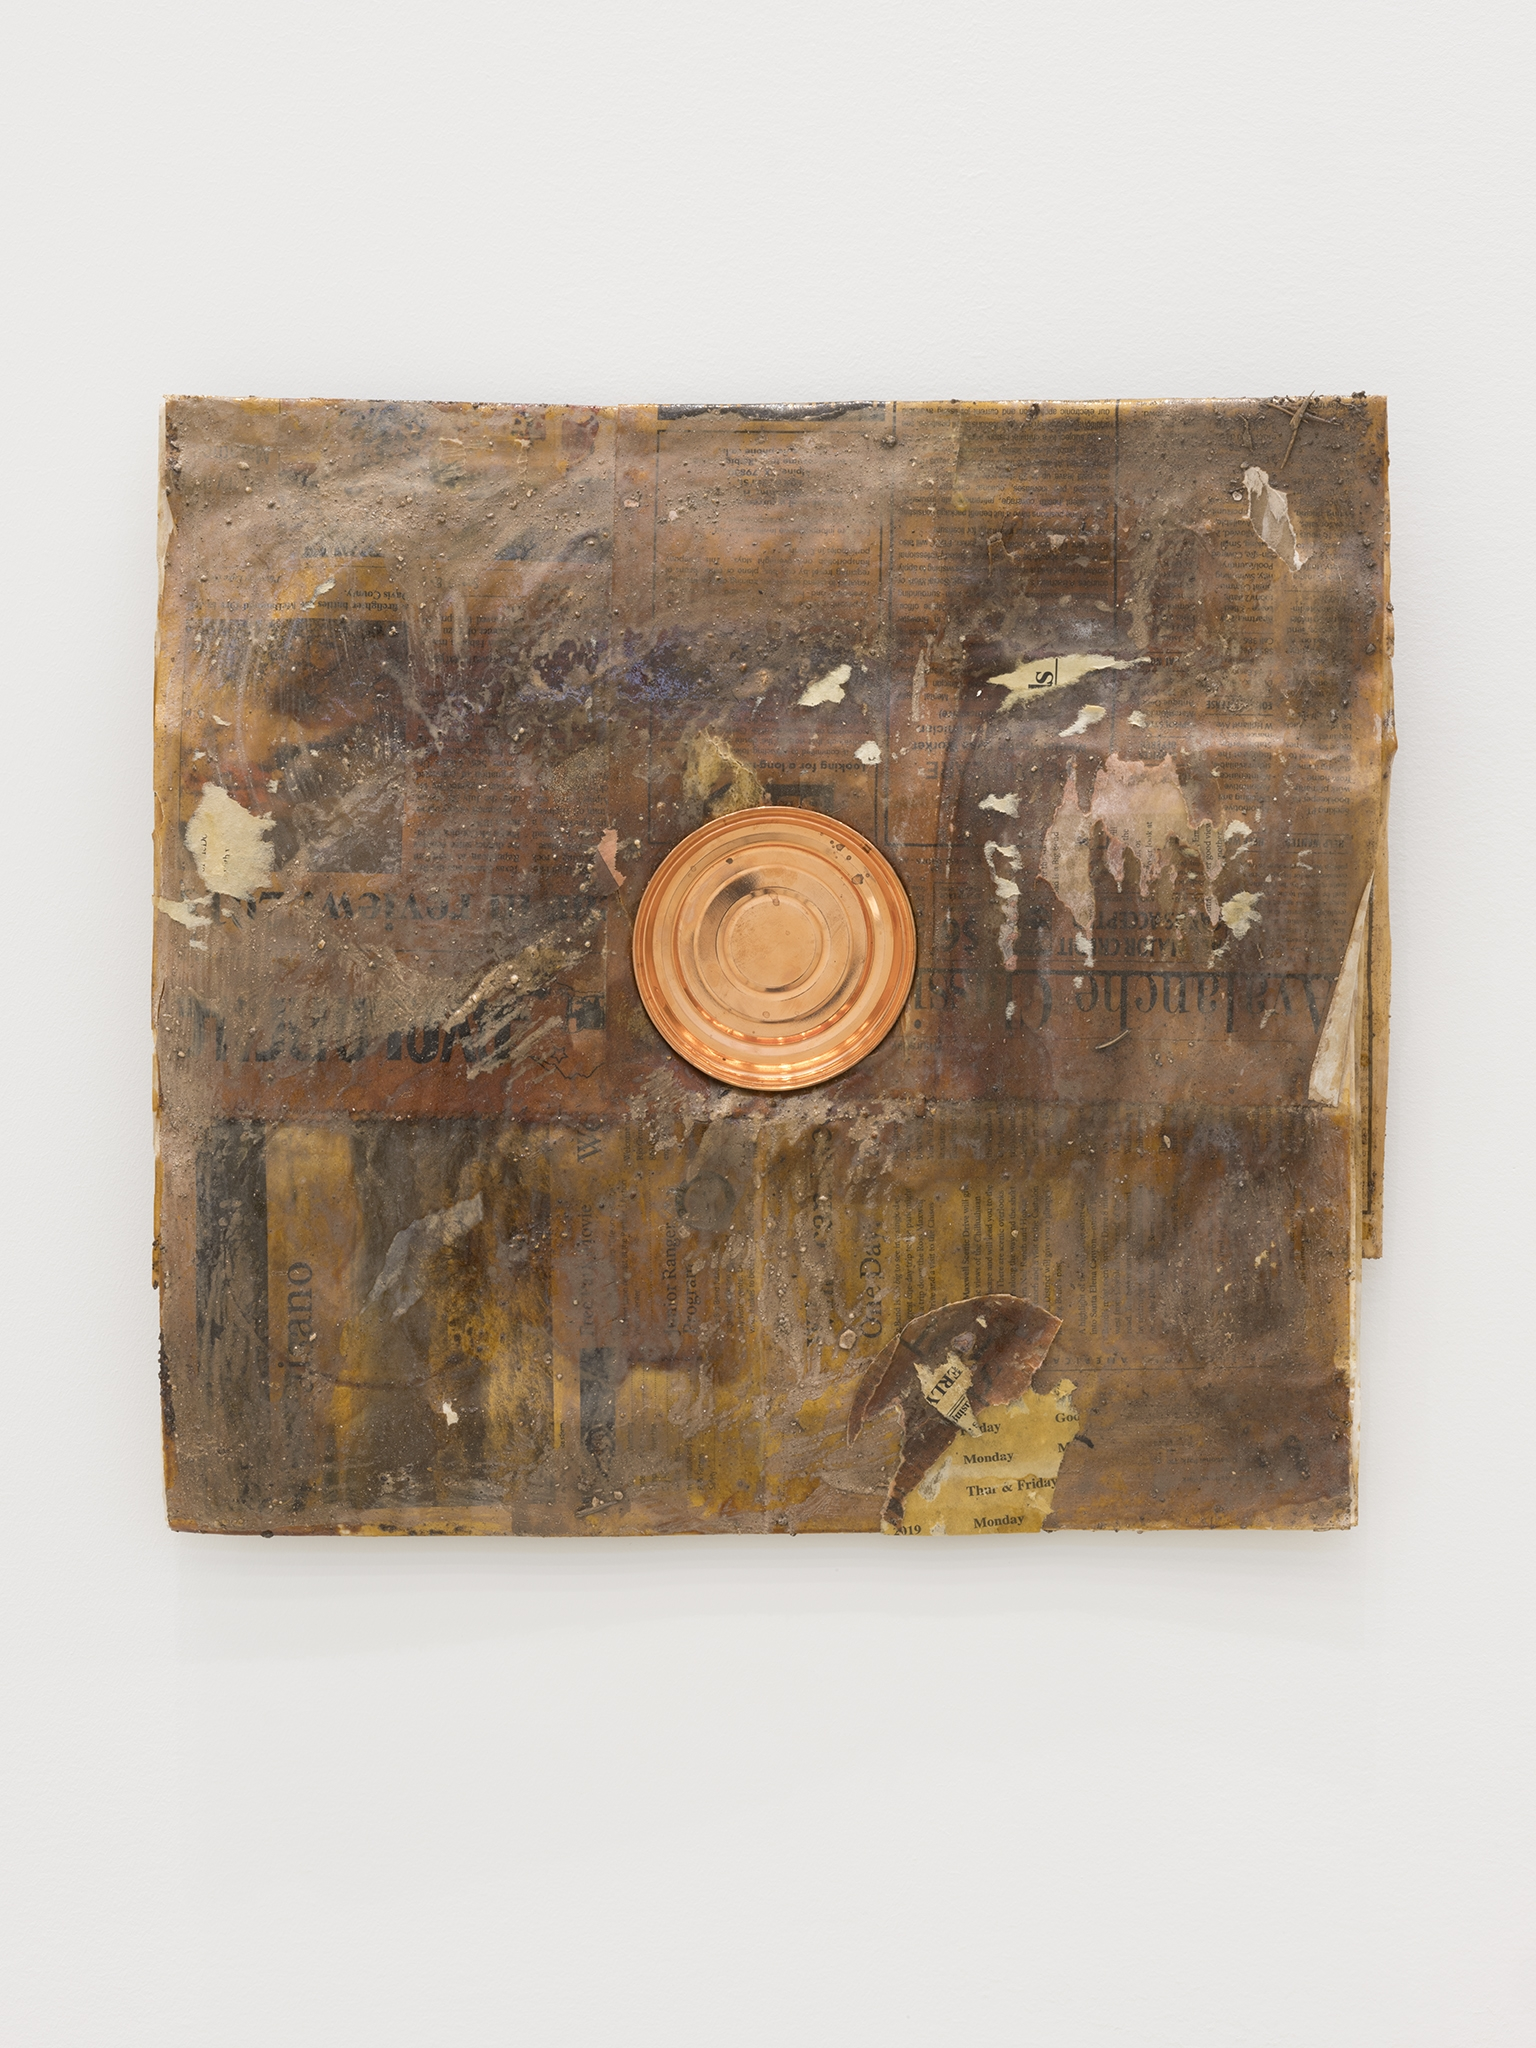 Rochelle Goldberg, Dirty Wall, 2019, newsprint, shellac, copperplated can, dirt from the river, 16 x 18 in. (41 x 45 cm) by